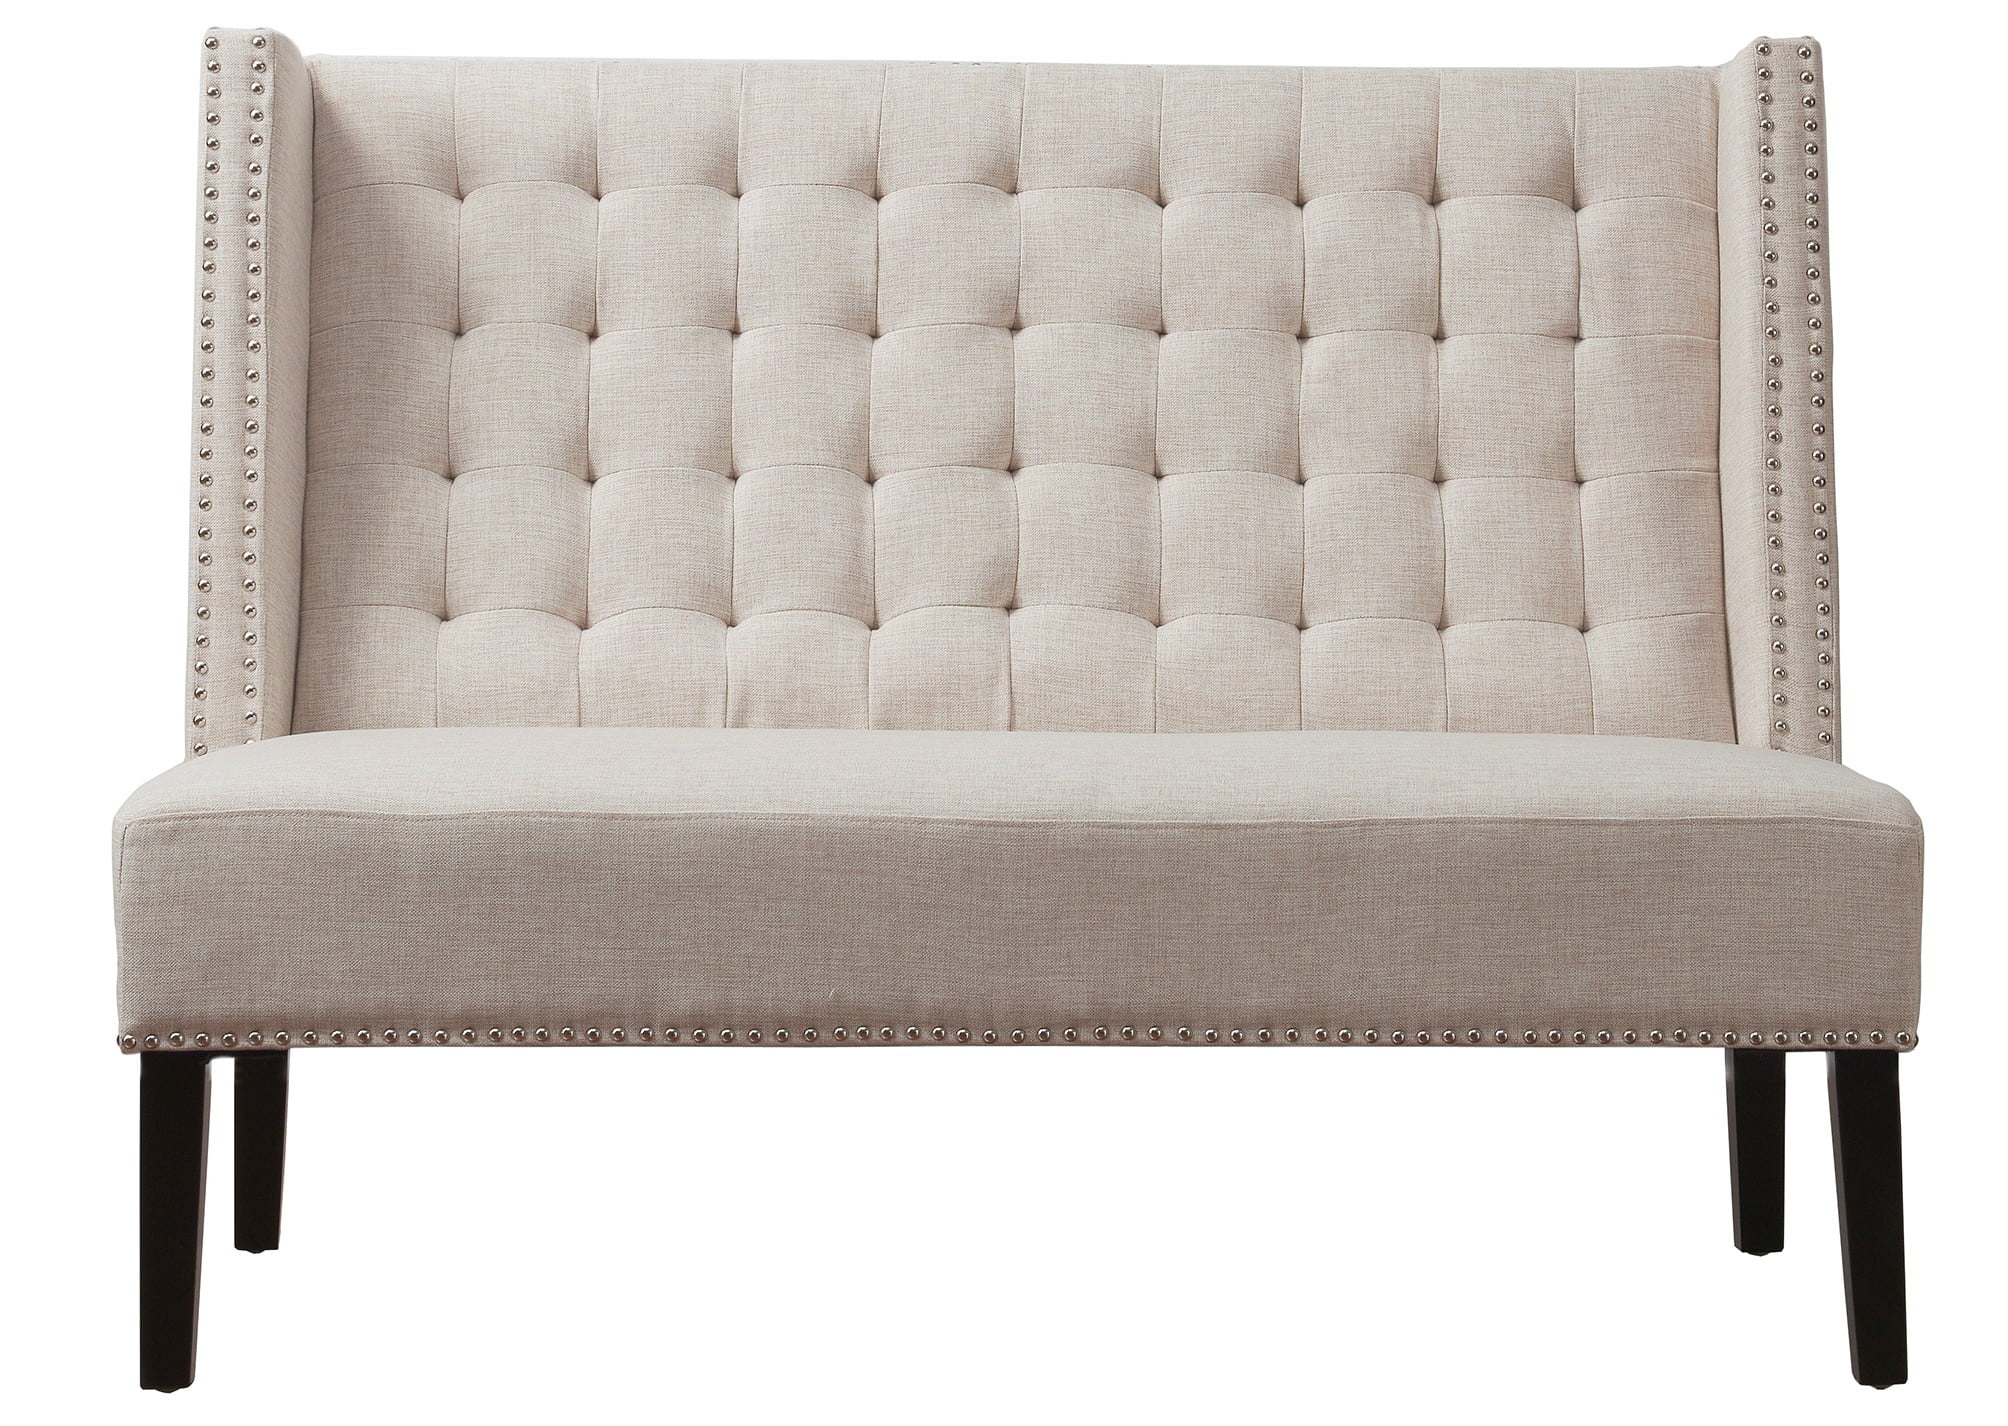 Halifax beige linen banquette bench from tov tov 63114 Banquette bench